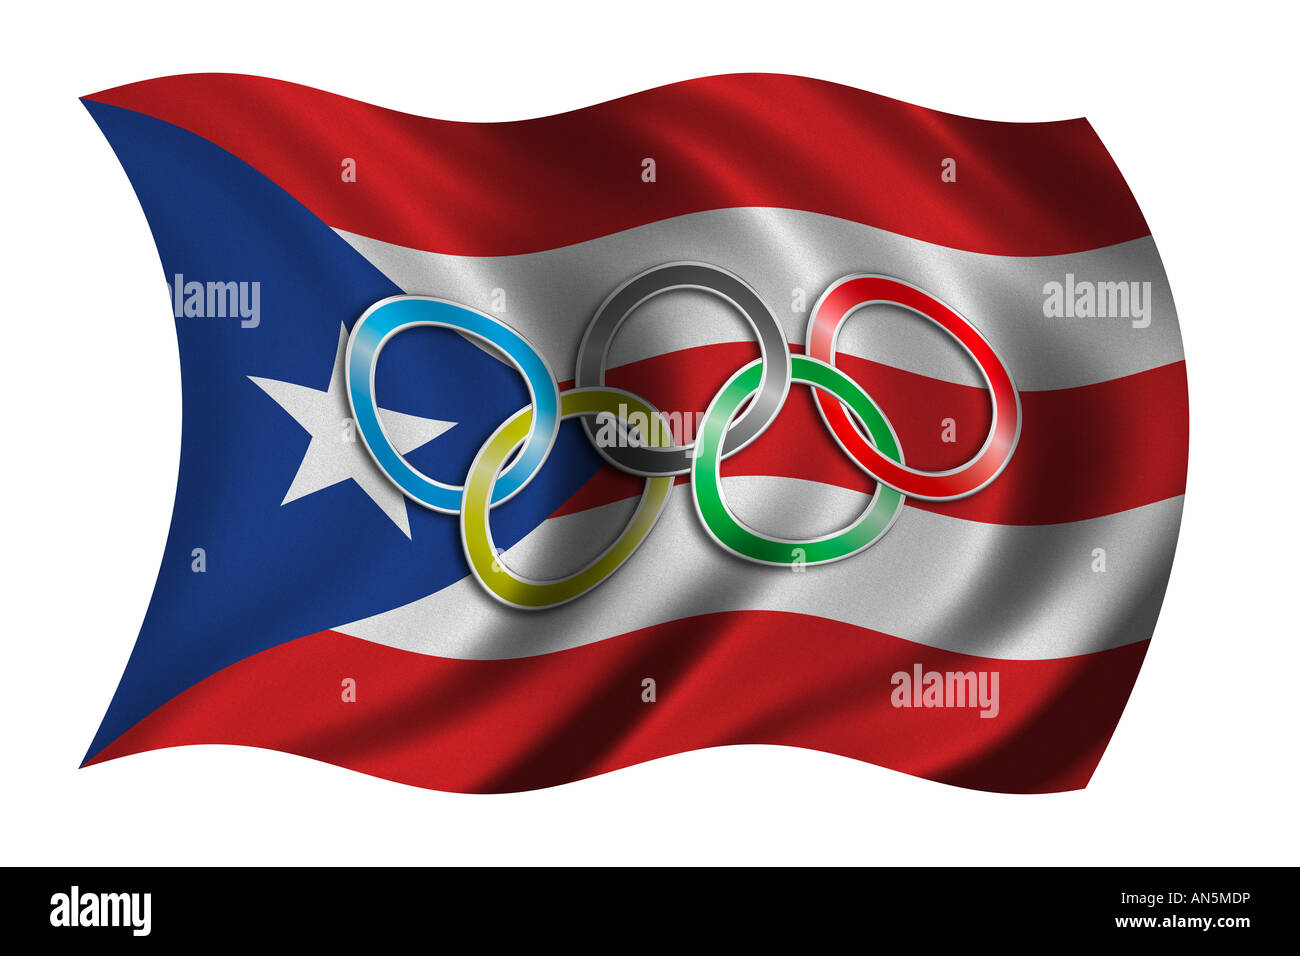 Flag Of Puerto Rico With Olympic Symbol Stock Photo 15420321 Alamy